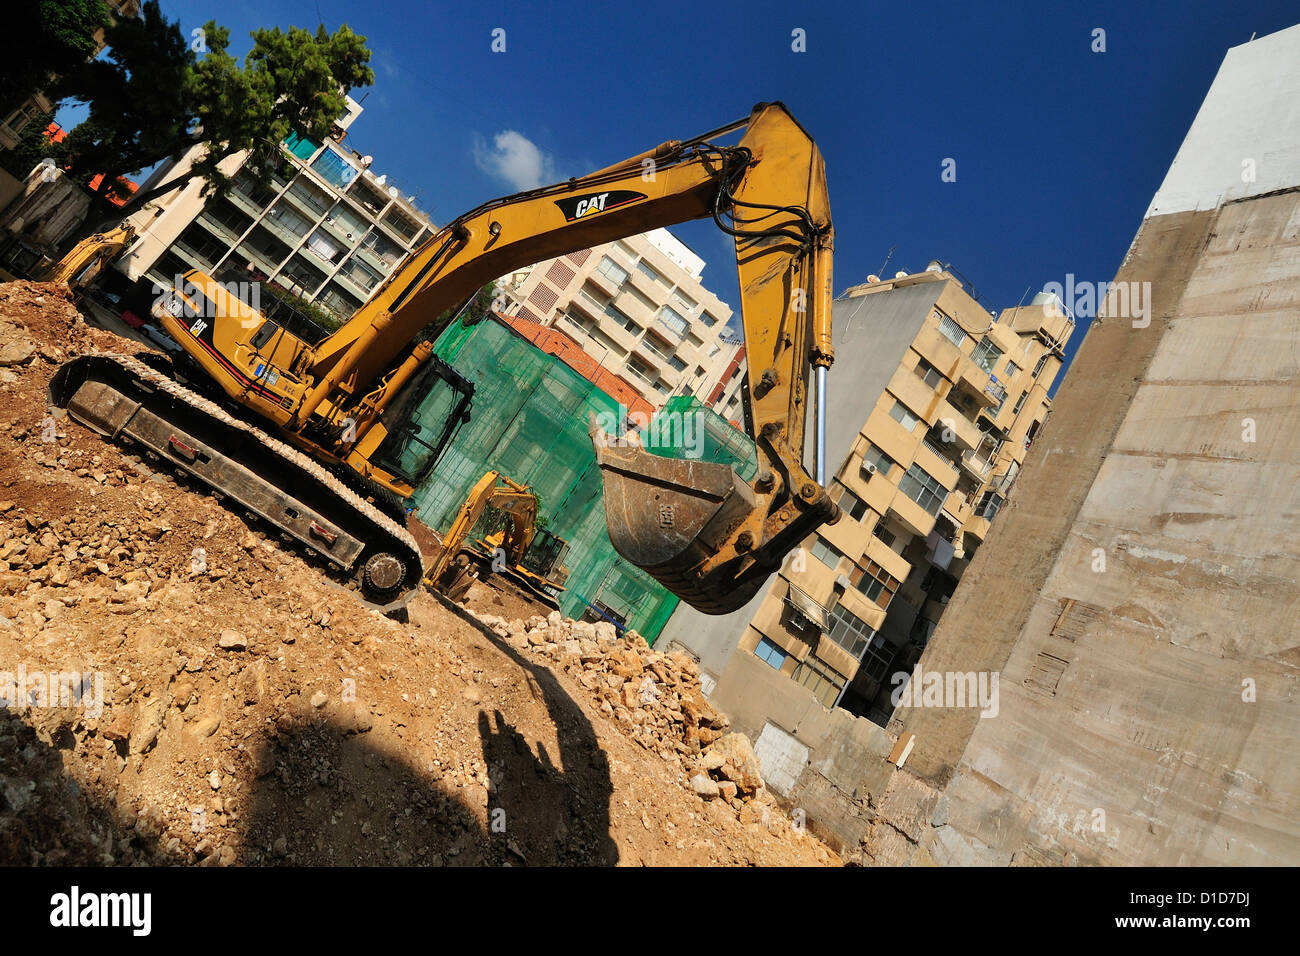 Bâtiments en construction, Beyrouth, Liban Photo Stock